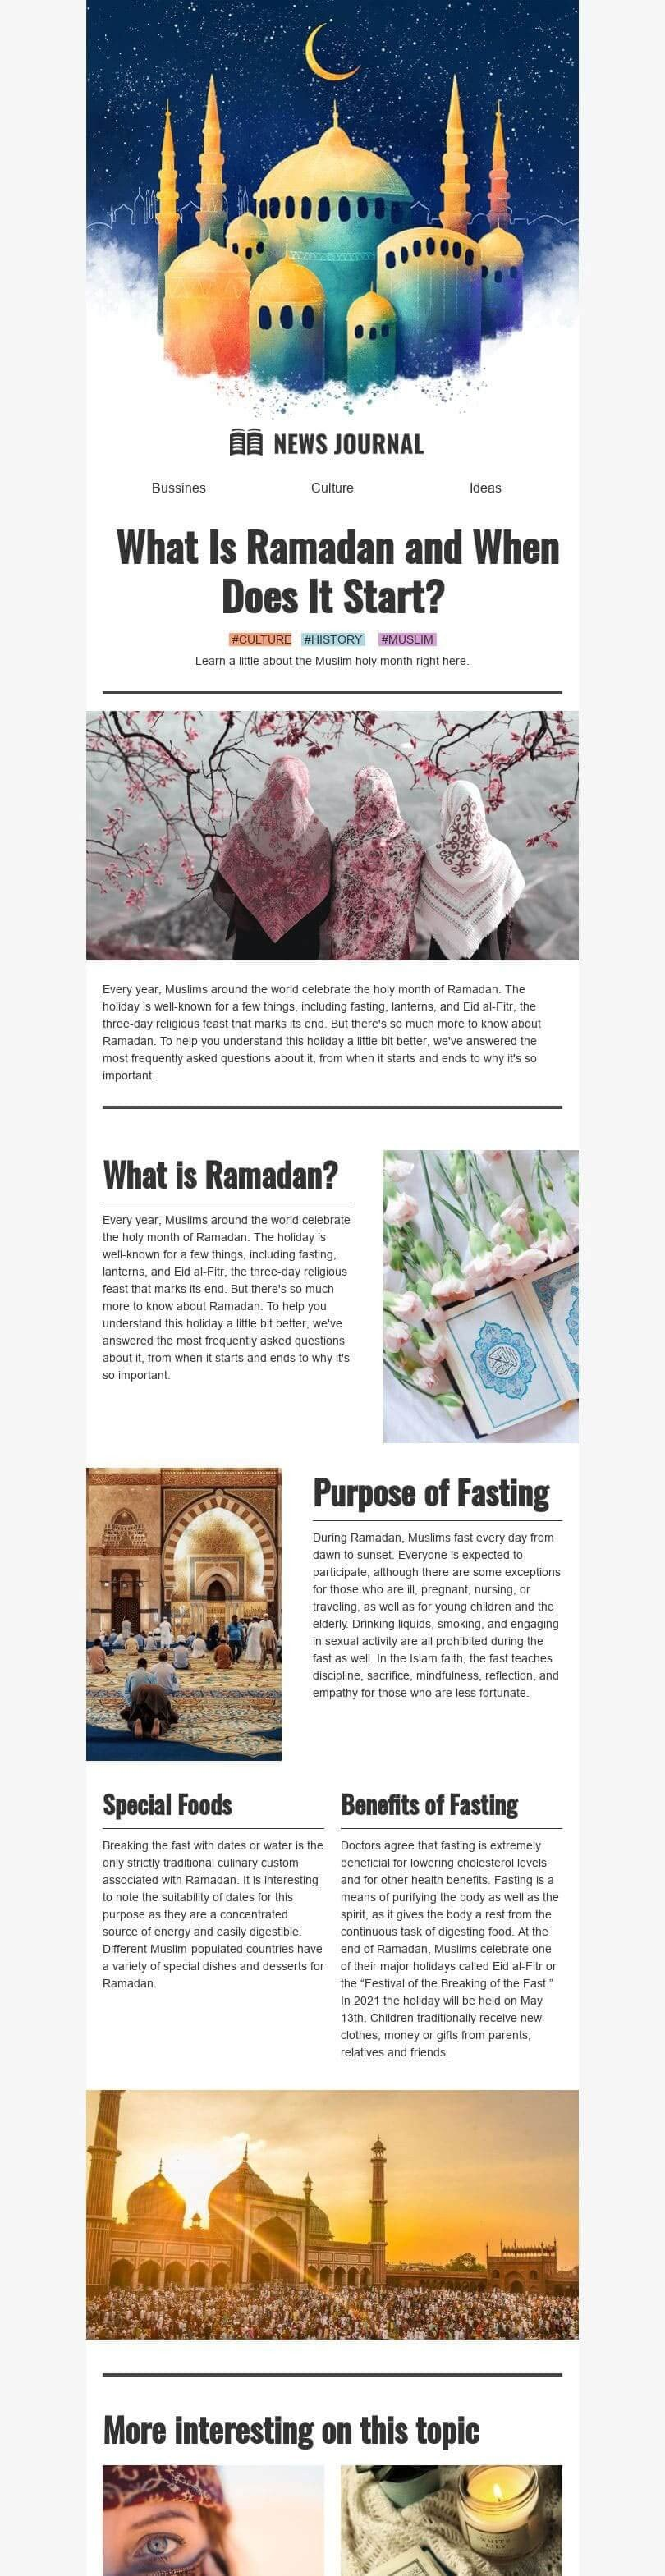 Ramadan Email Template «What is Ramadan» for Publications & Blogging industry desktop view